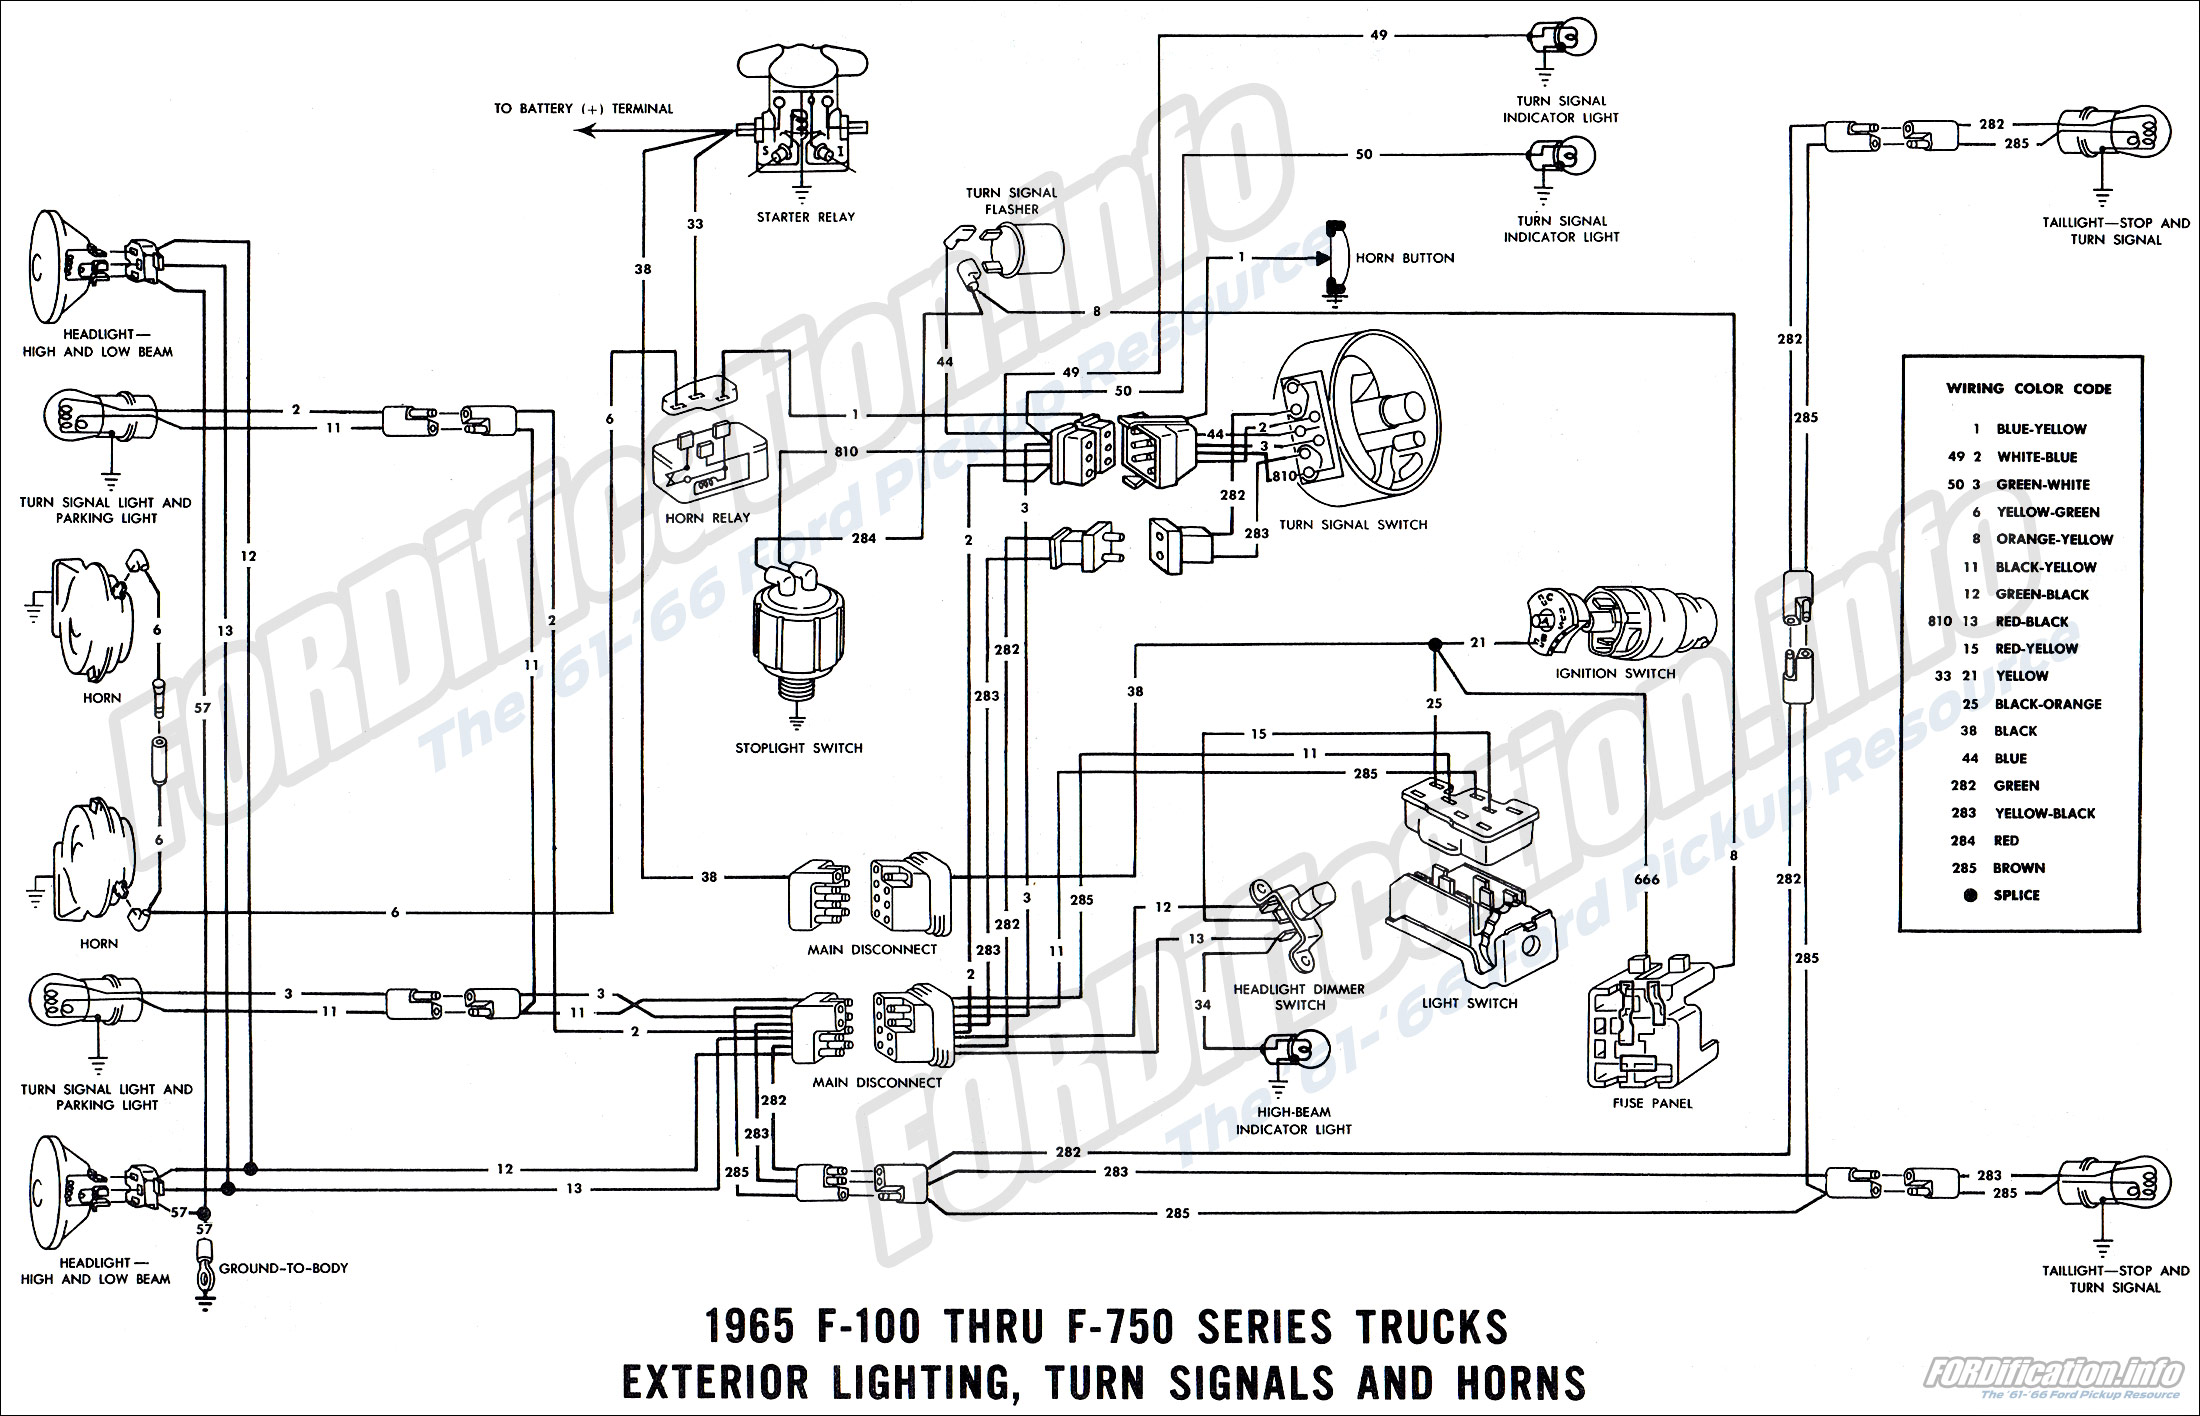 1968 f250 wiring diagram diagram data schema1968 f250 wiring diagram wiring diagram database 1968 ford alternator wiring diagram 1968 f250 wiring diagram